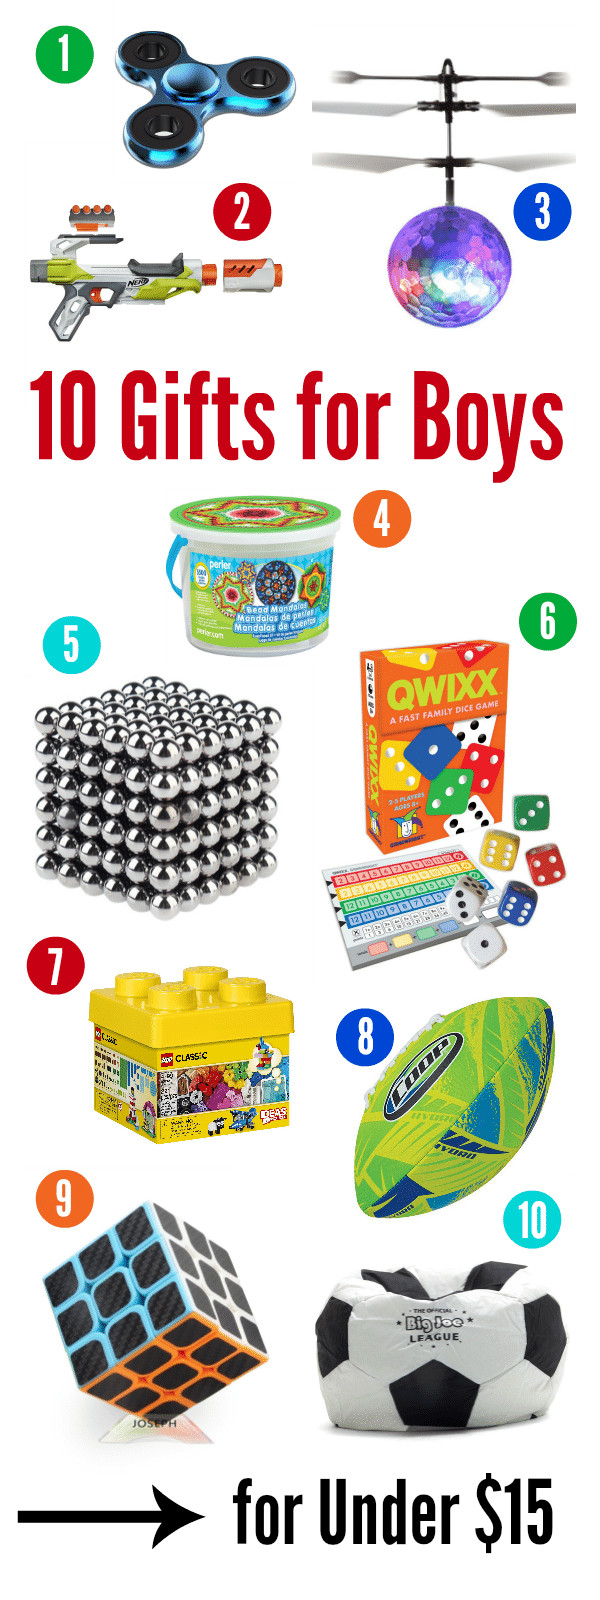 Best ideas about Gift Ideas For Boys 10 . Save or Pin 10 Best Gifts for a 10 Year Old Boy for Under $15 – Fun Now.